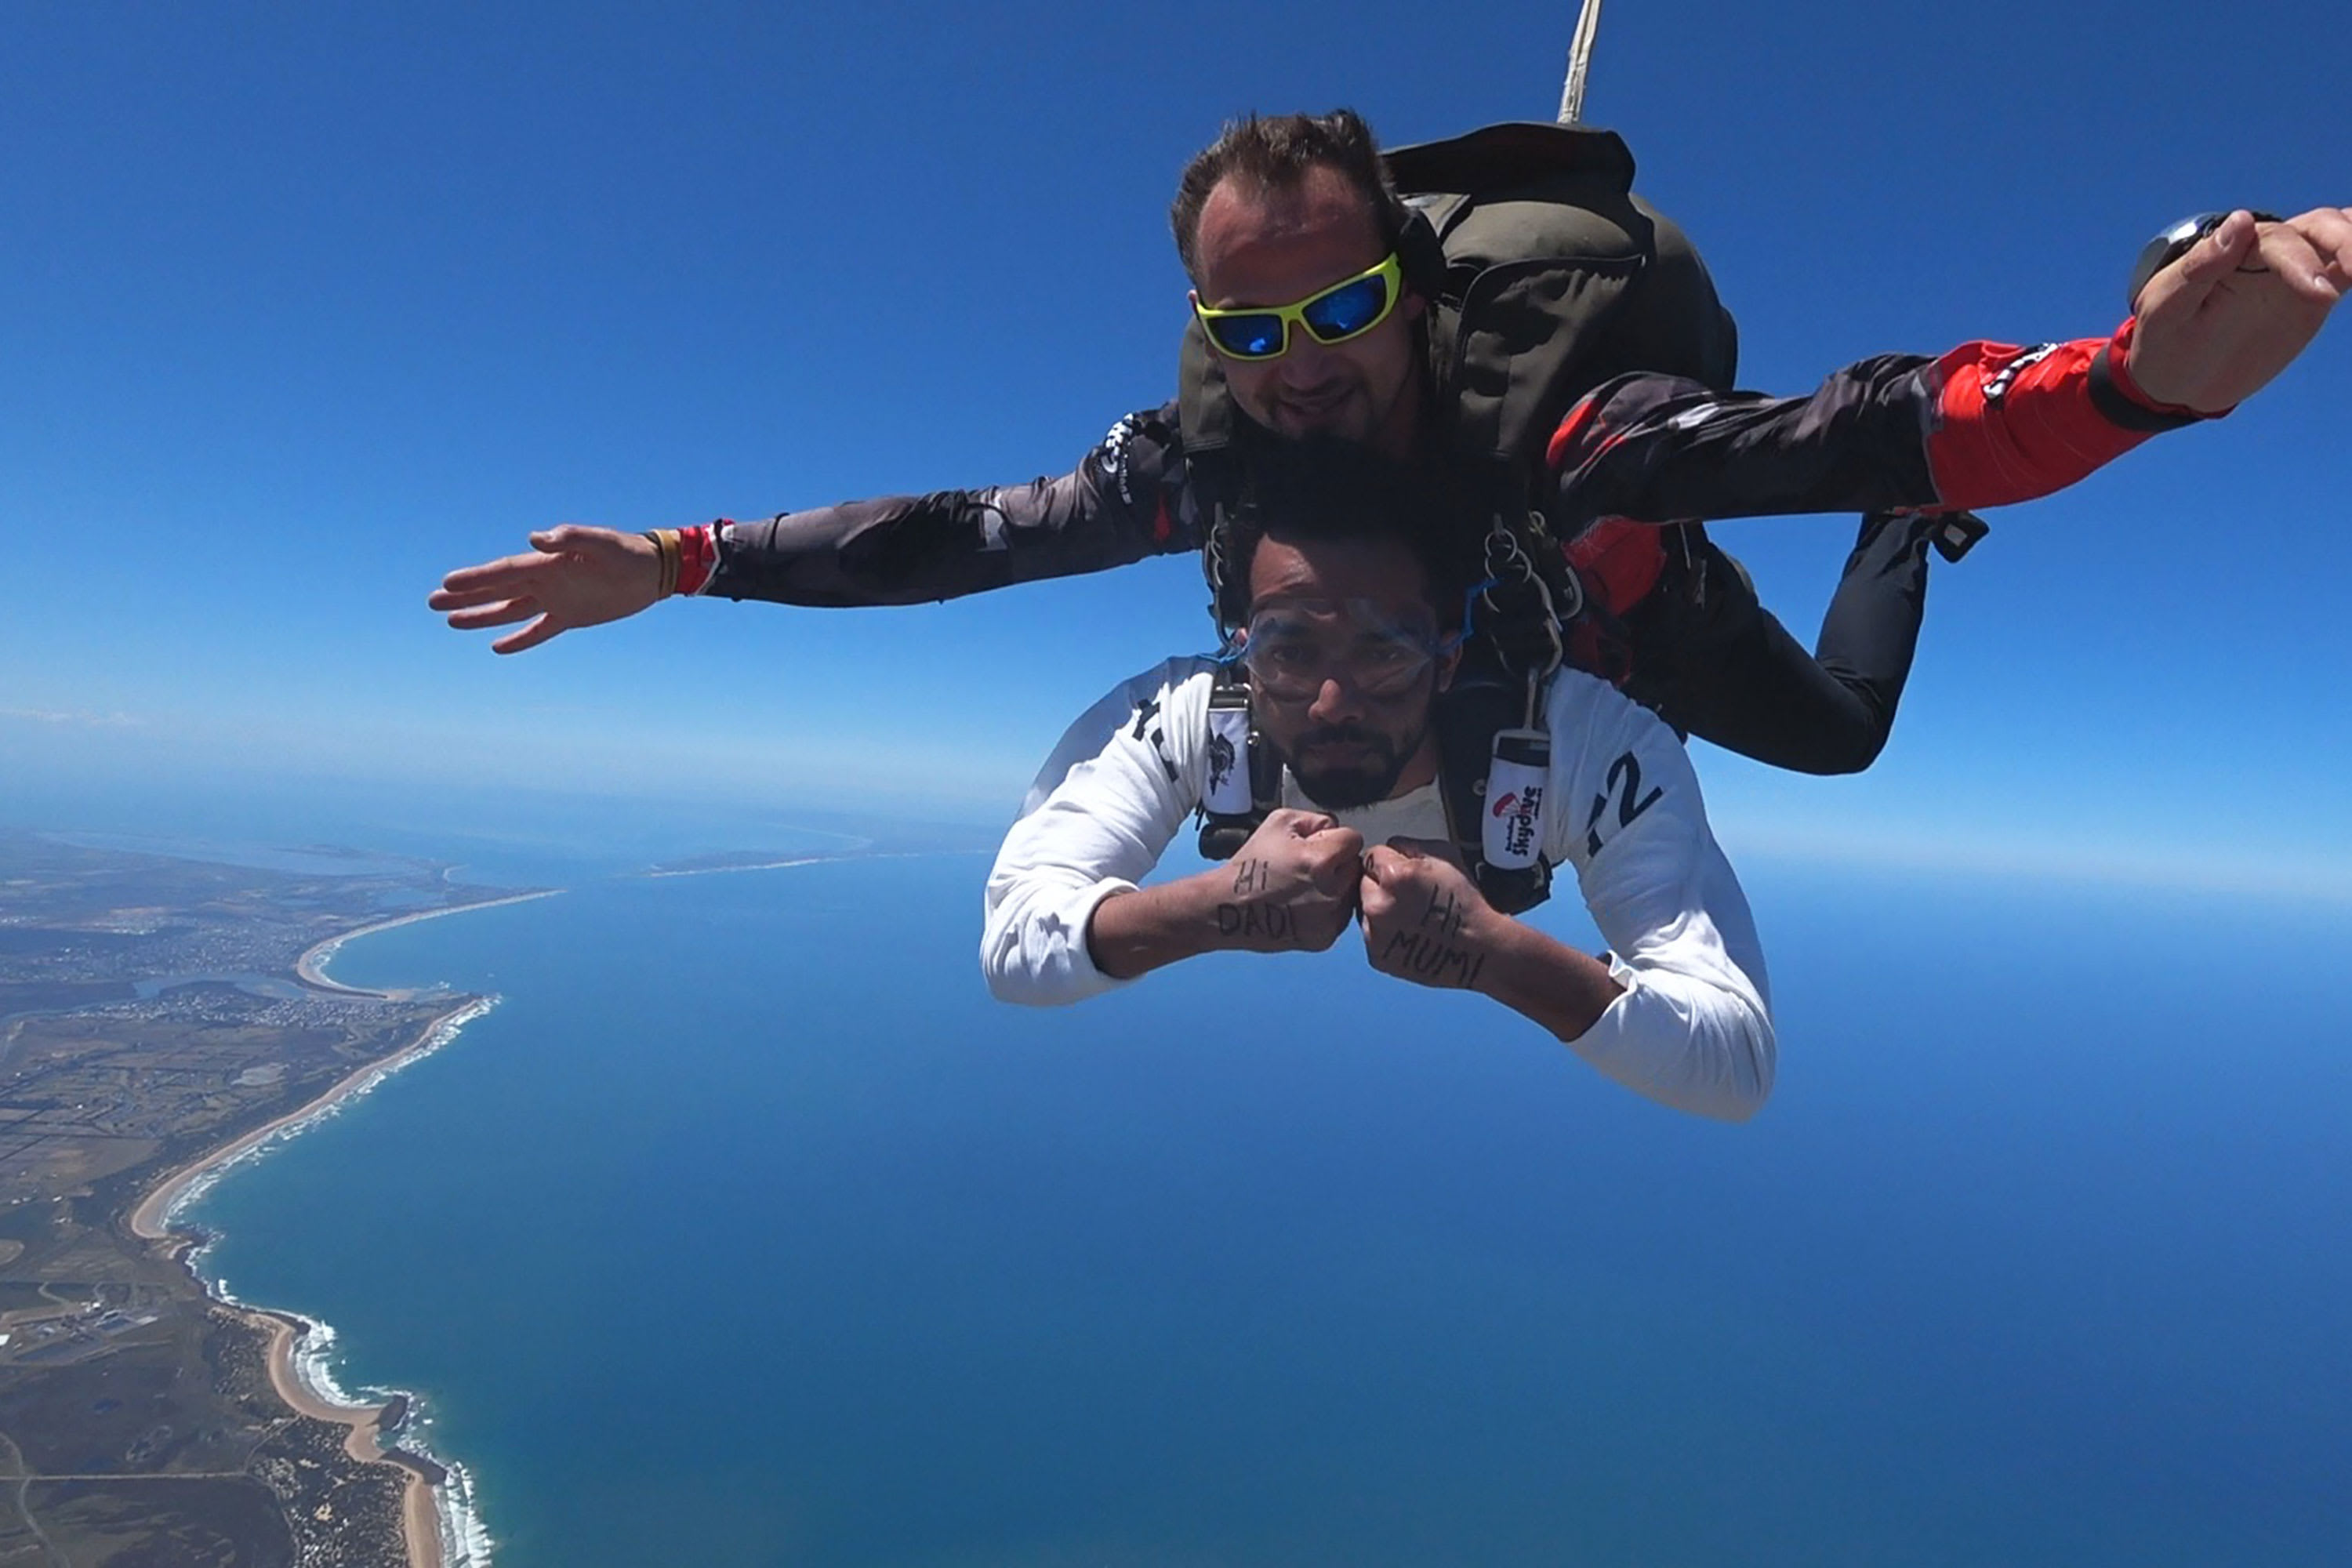 Skydiving Great Ocean Road (Torquay) - Tandem Skydive 12,000ft